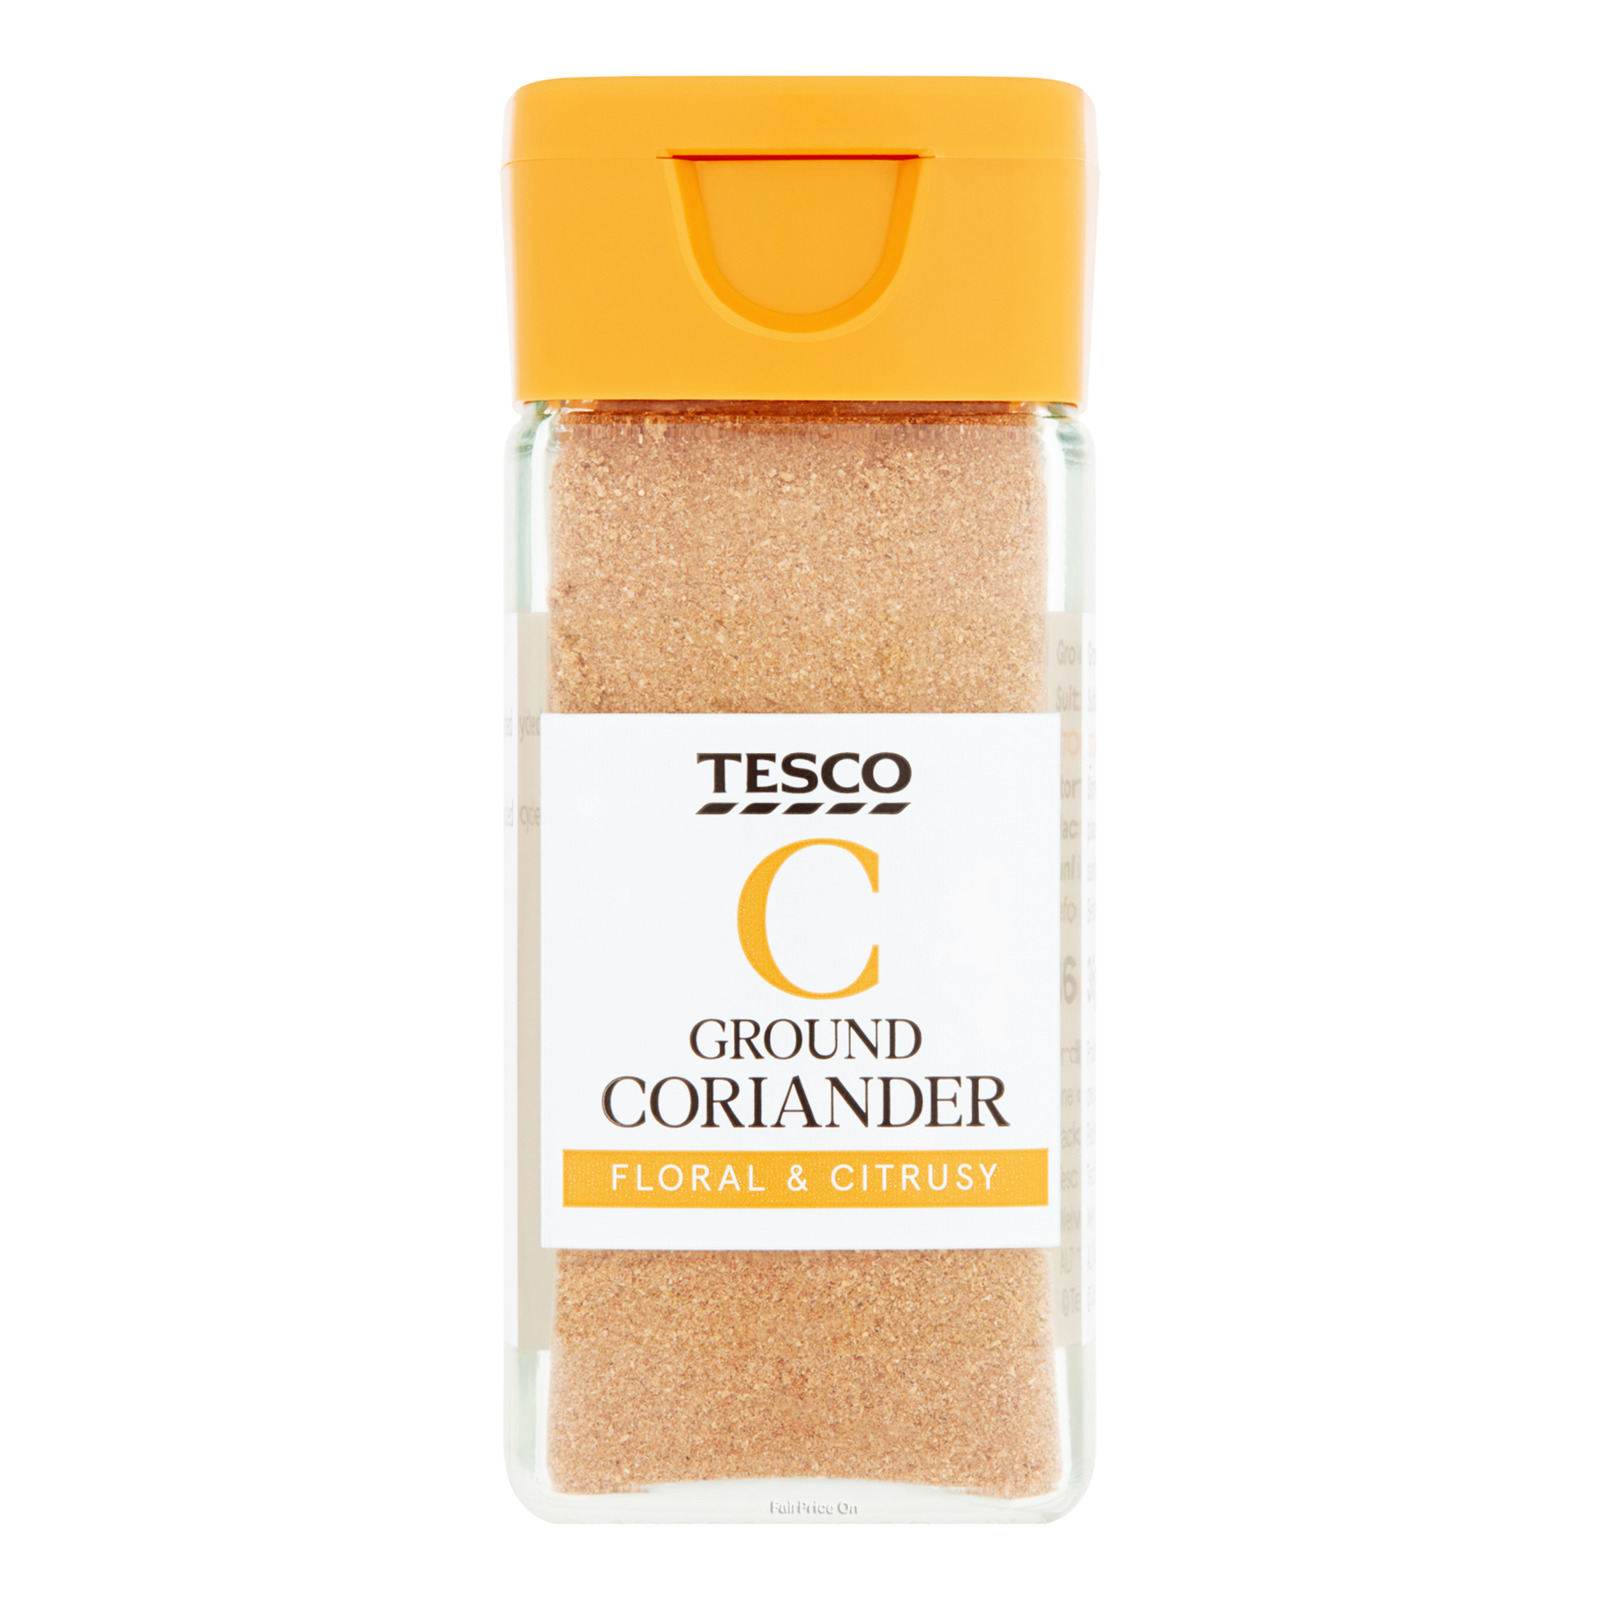 Tesco Ground Spice - Coriander